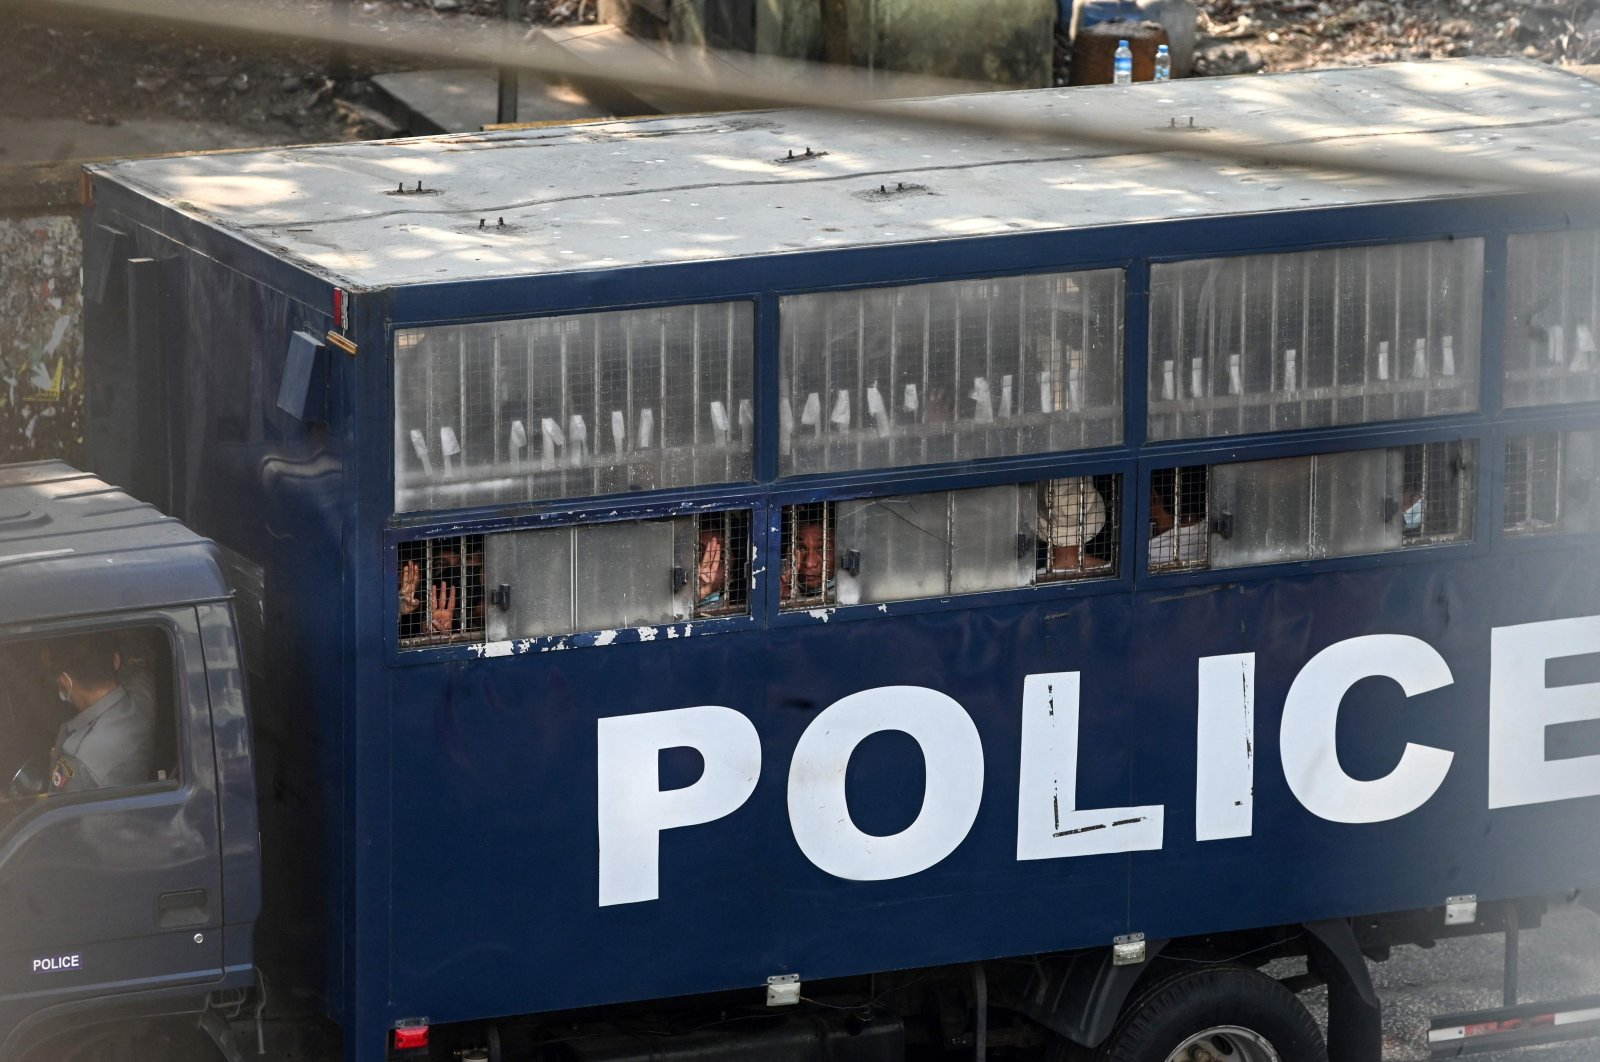 Protesters make the three-finger salute from a police truck in Yangon after a crackdown on demonstrations against the military coup, Yangon, Myanmar, Feb. 27, 2021. (AFP Photo)